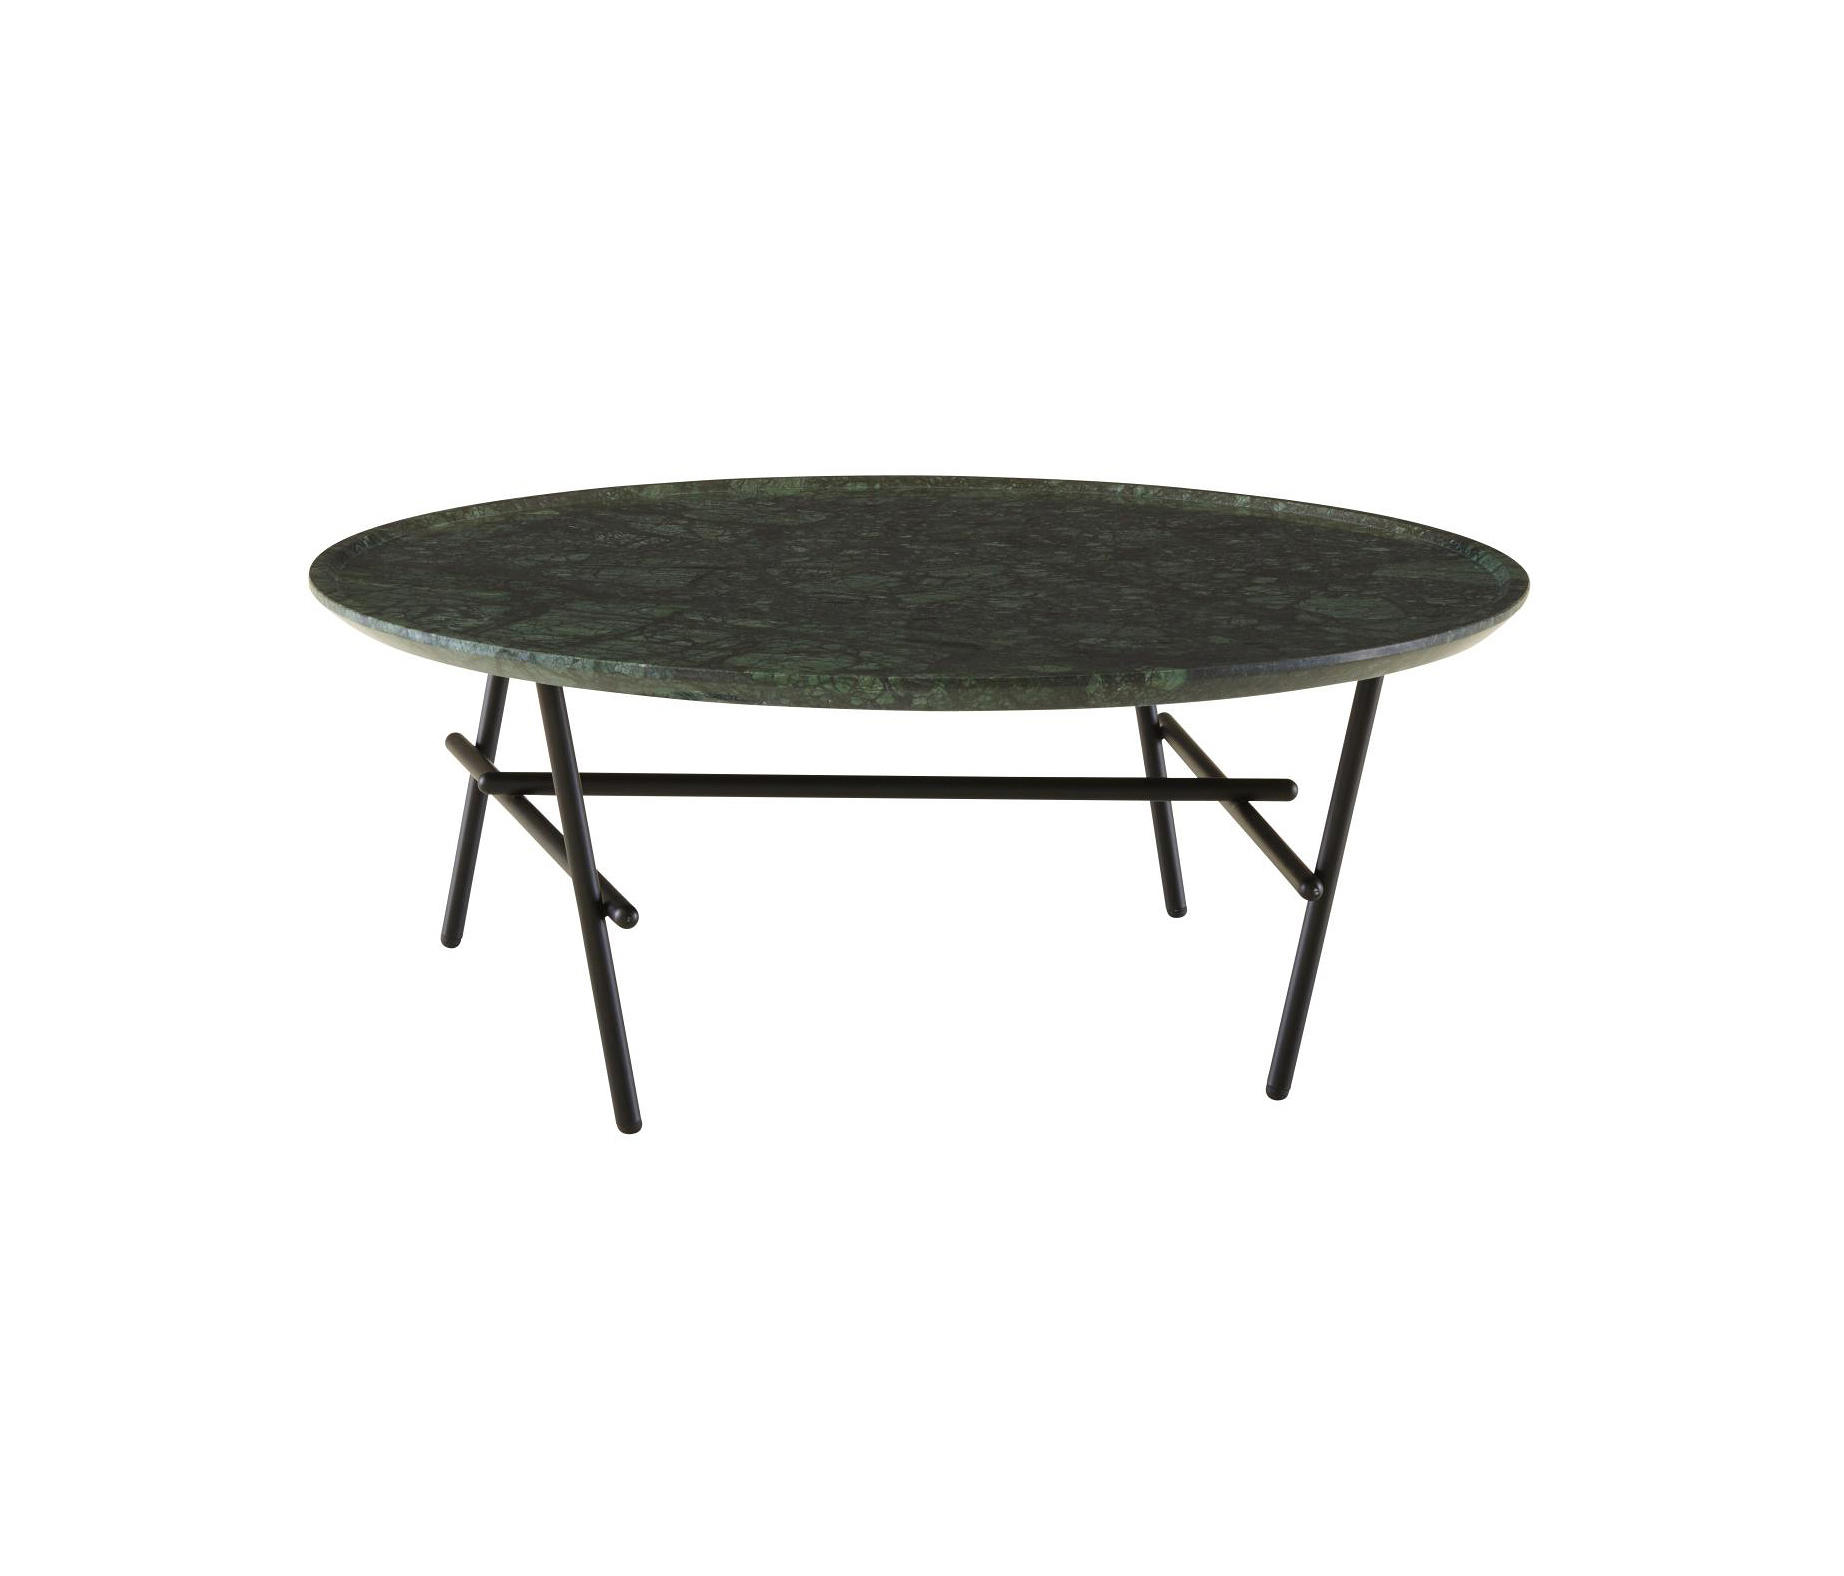 Yuragi Table Basse Verde Tables Basses De Ligne Roset